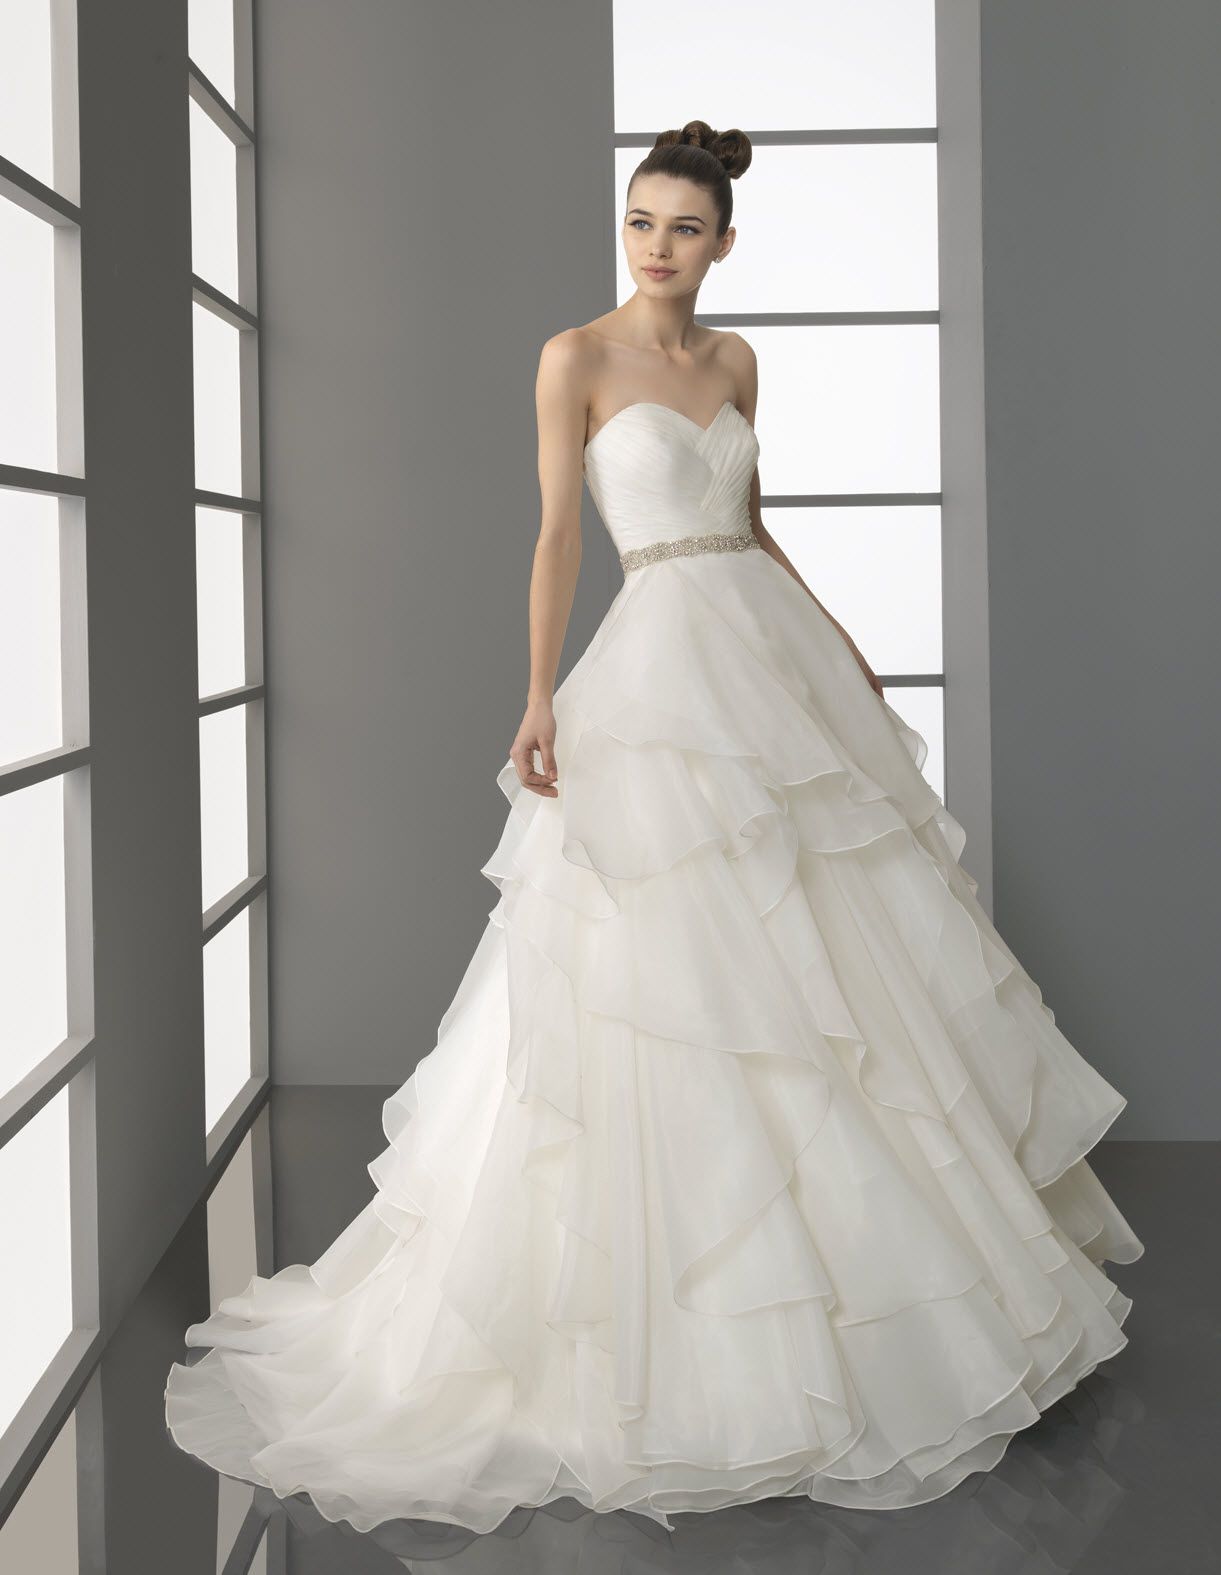 Polanco-wedding-dress-spring-2012-bridal-gowns-aire-barcelona-sweetheart-a-line.original